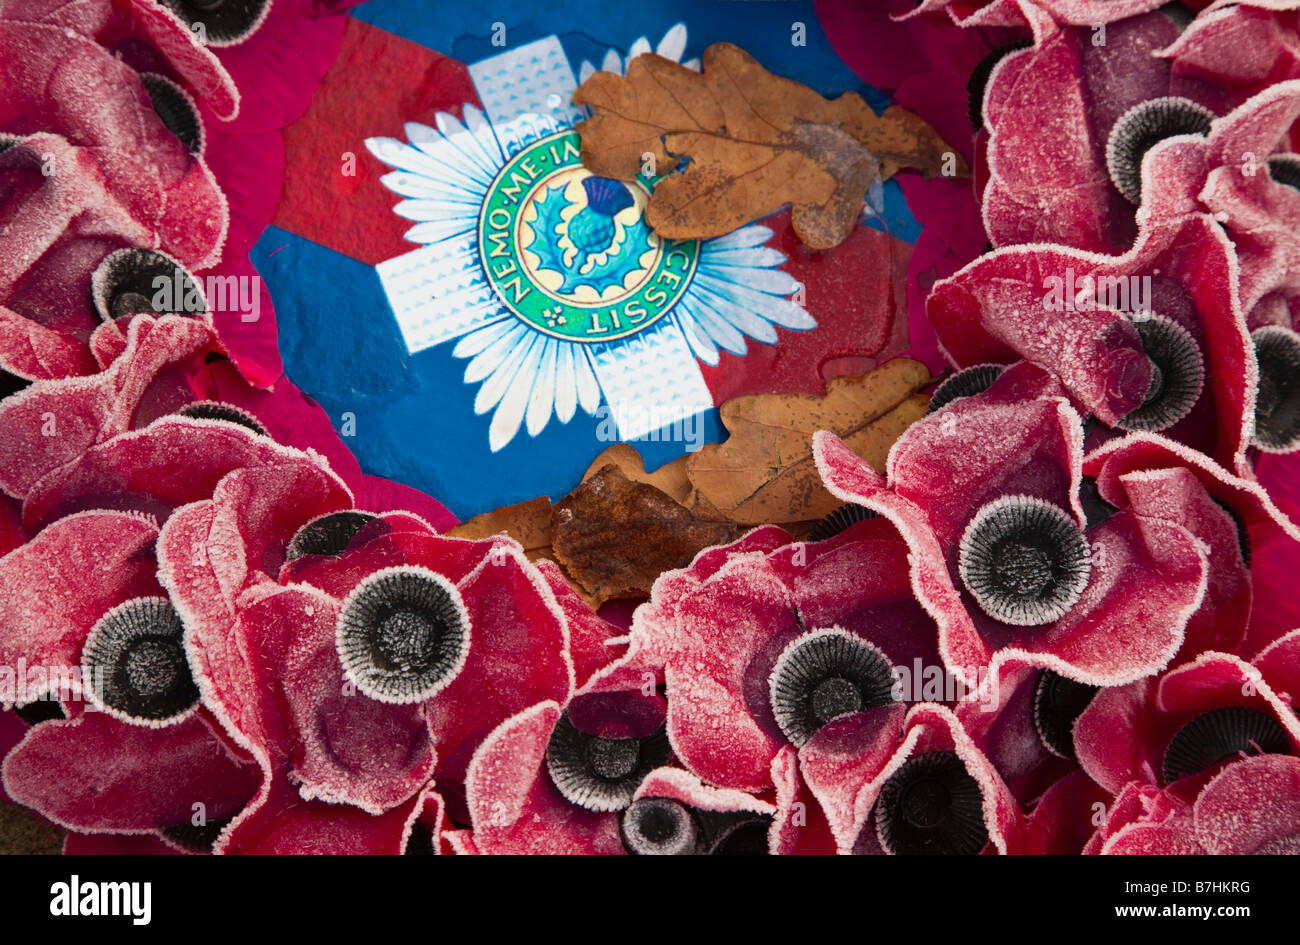 Armistice Day Haig Fund poppy memorial November 11th Britain wreath laid on a war memorial with winter frost - Stock Image